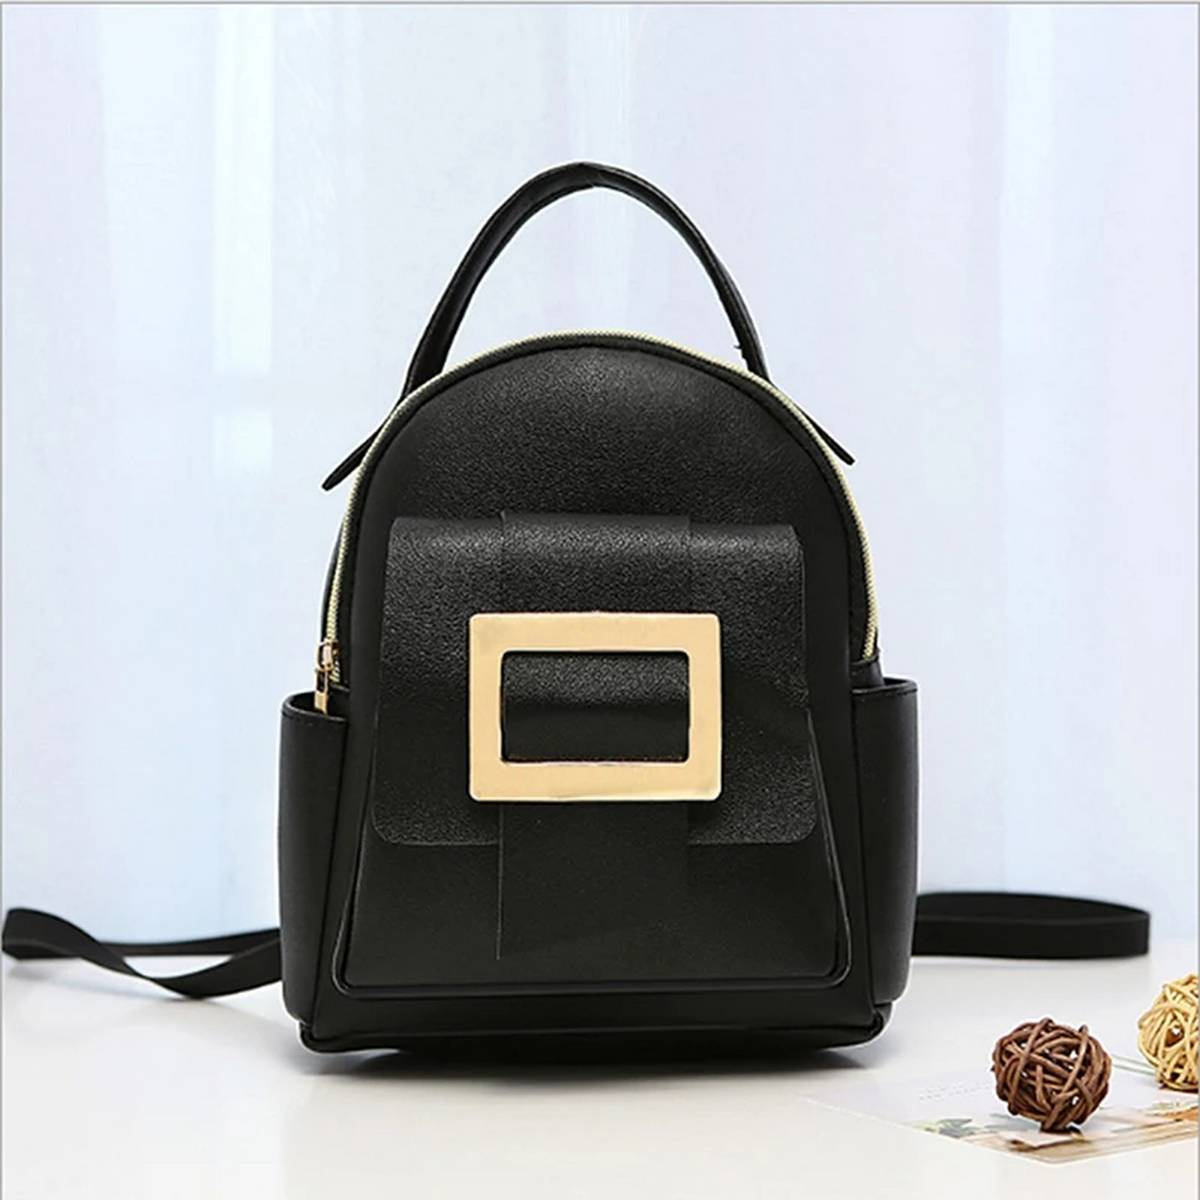 3 Styles use Pu Leather Material Mini Bag for Stylish Girl's (Backpack+Hand Carry+Side Shoulder)